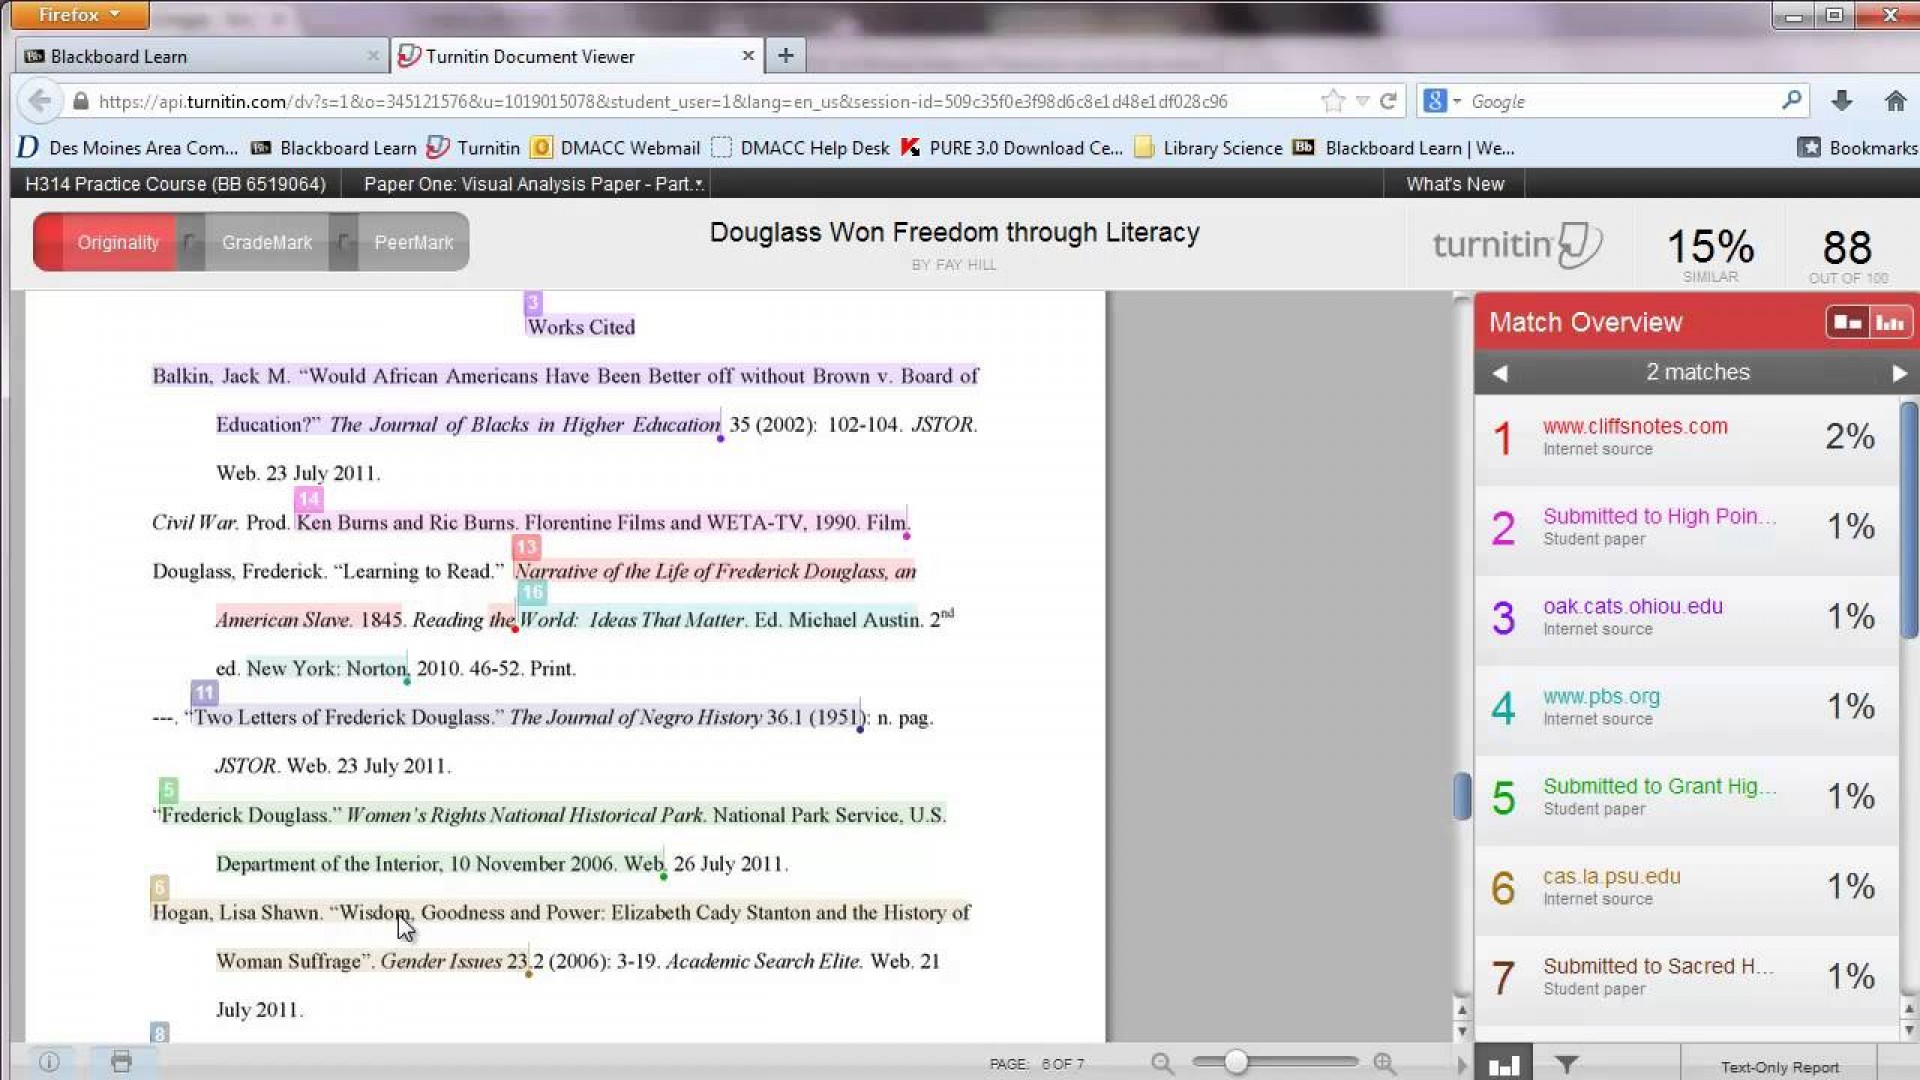 009 Check Plagiarism Of Research Paper Online Free Exceptional How To Best Checker For Papers Quora 1920